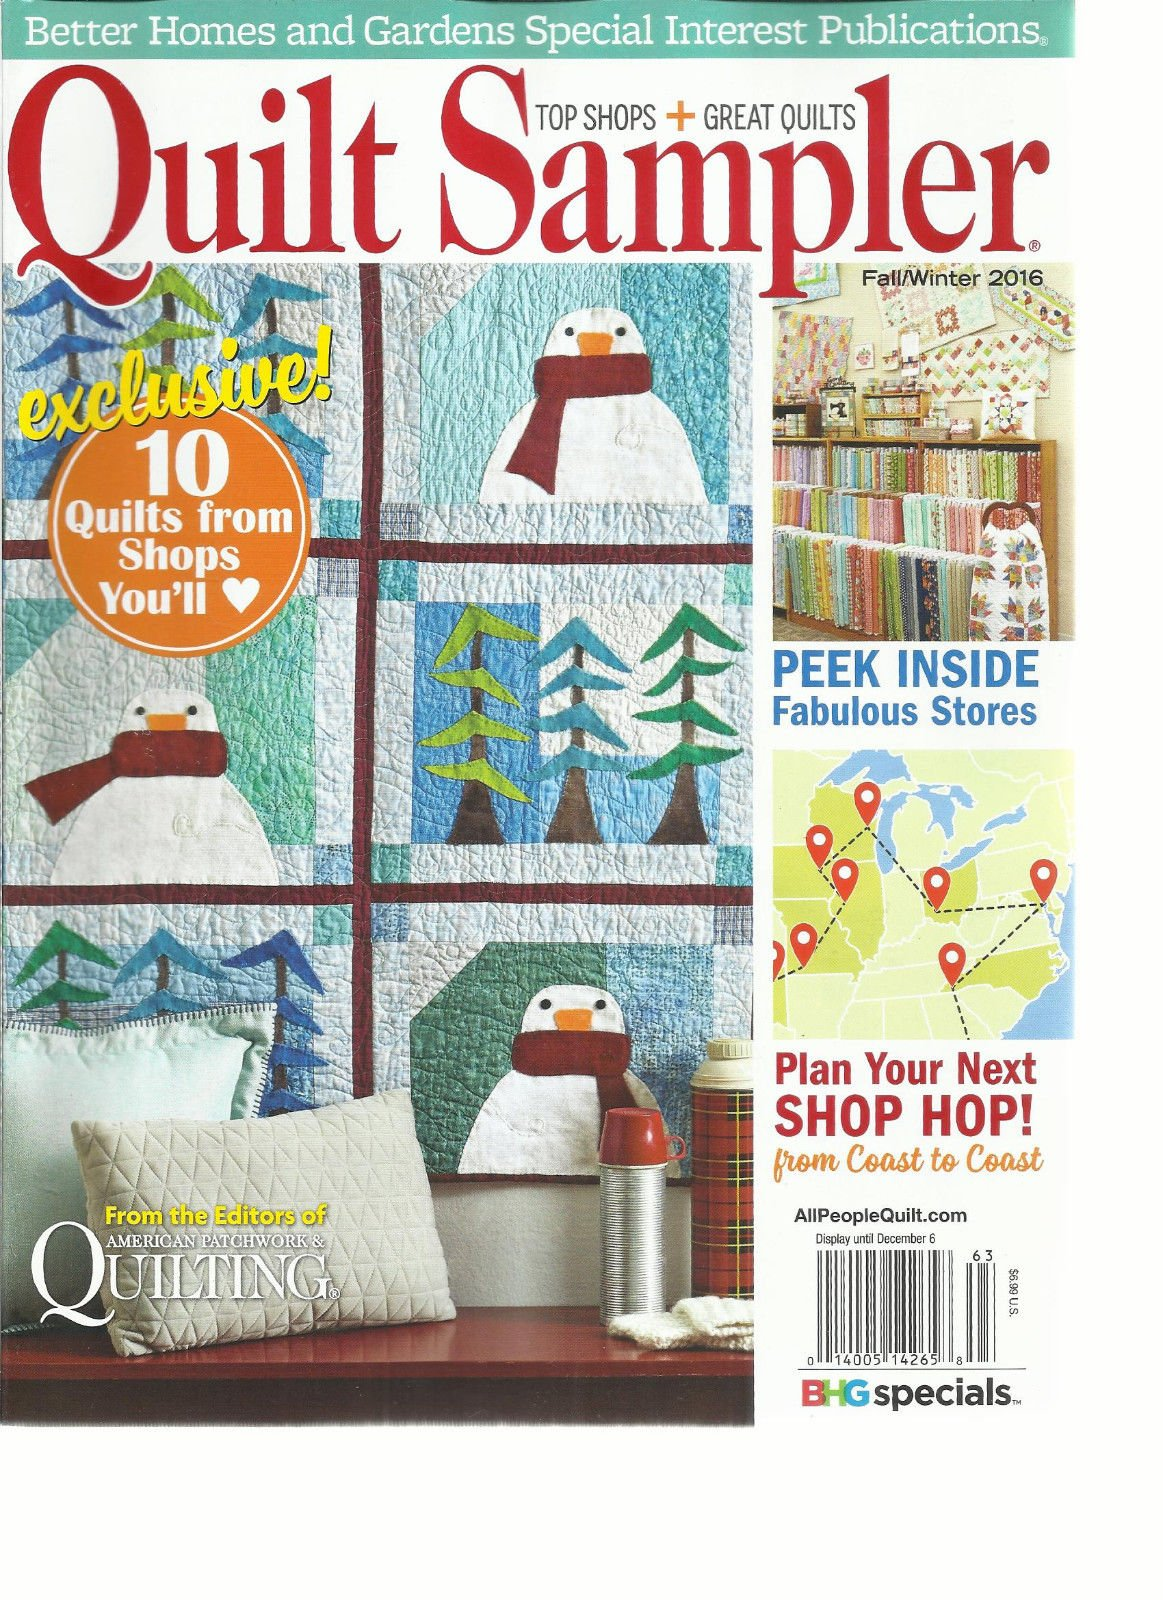 QUILT SAMPLER MAGAZINE, FALL / WINTER, 2016 10 QUILTS FROM SHOPS YOU'LL LOVE